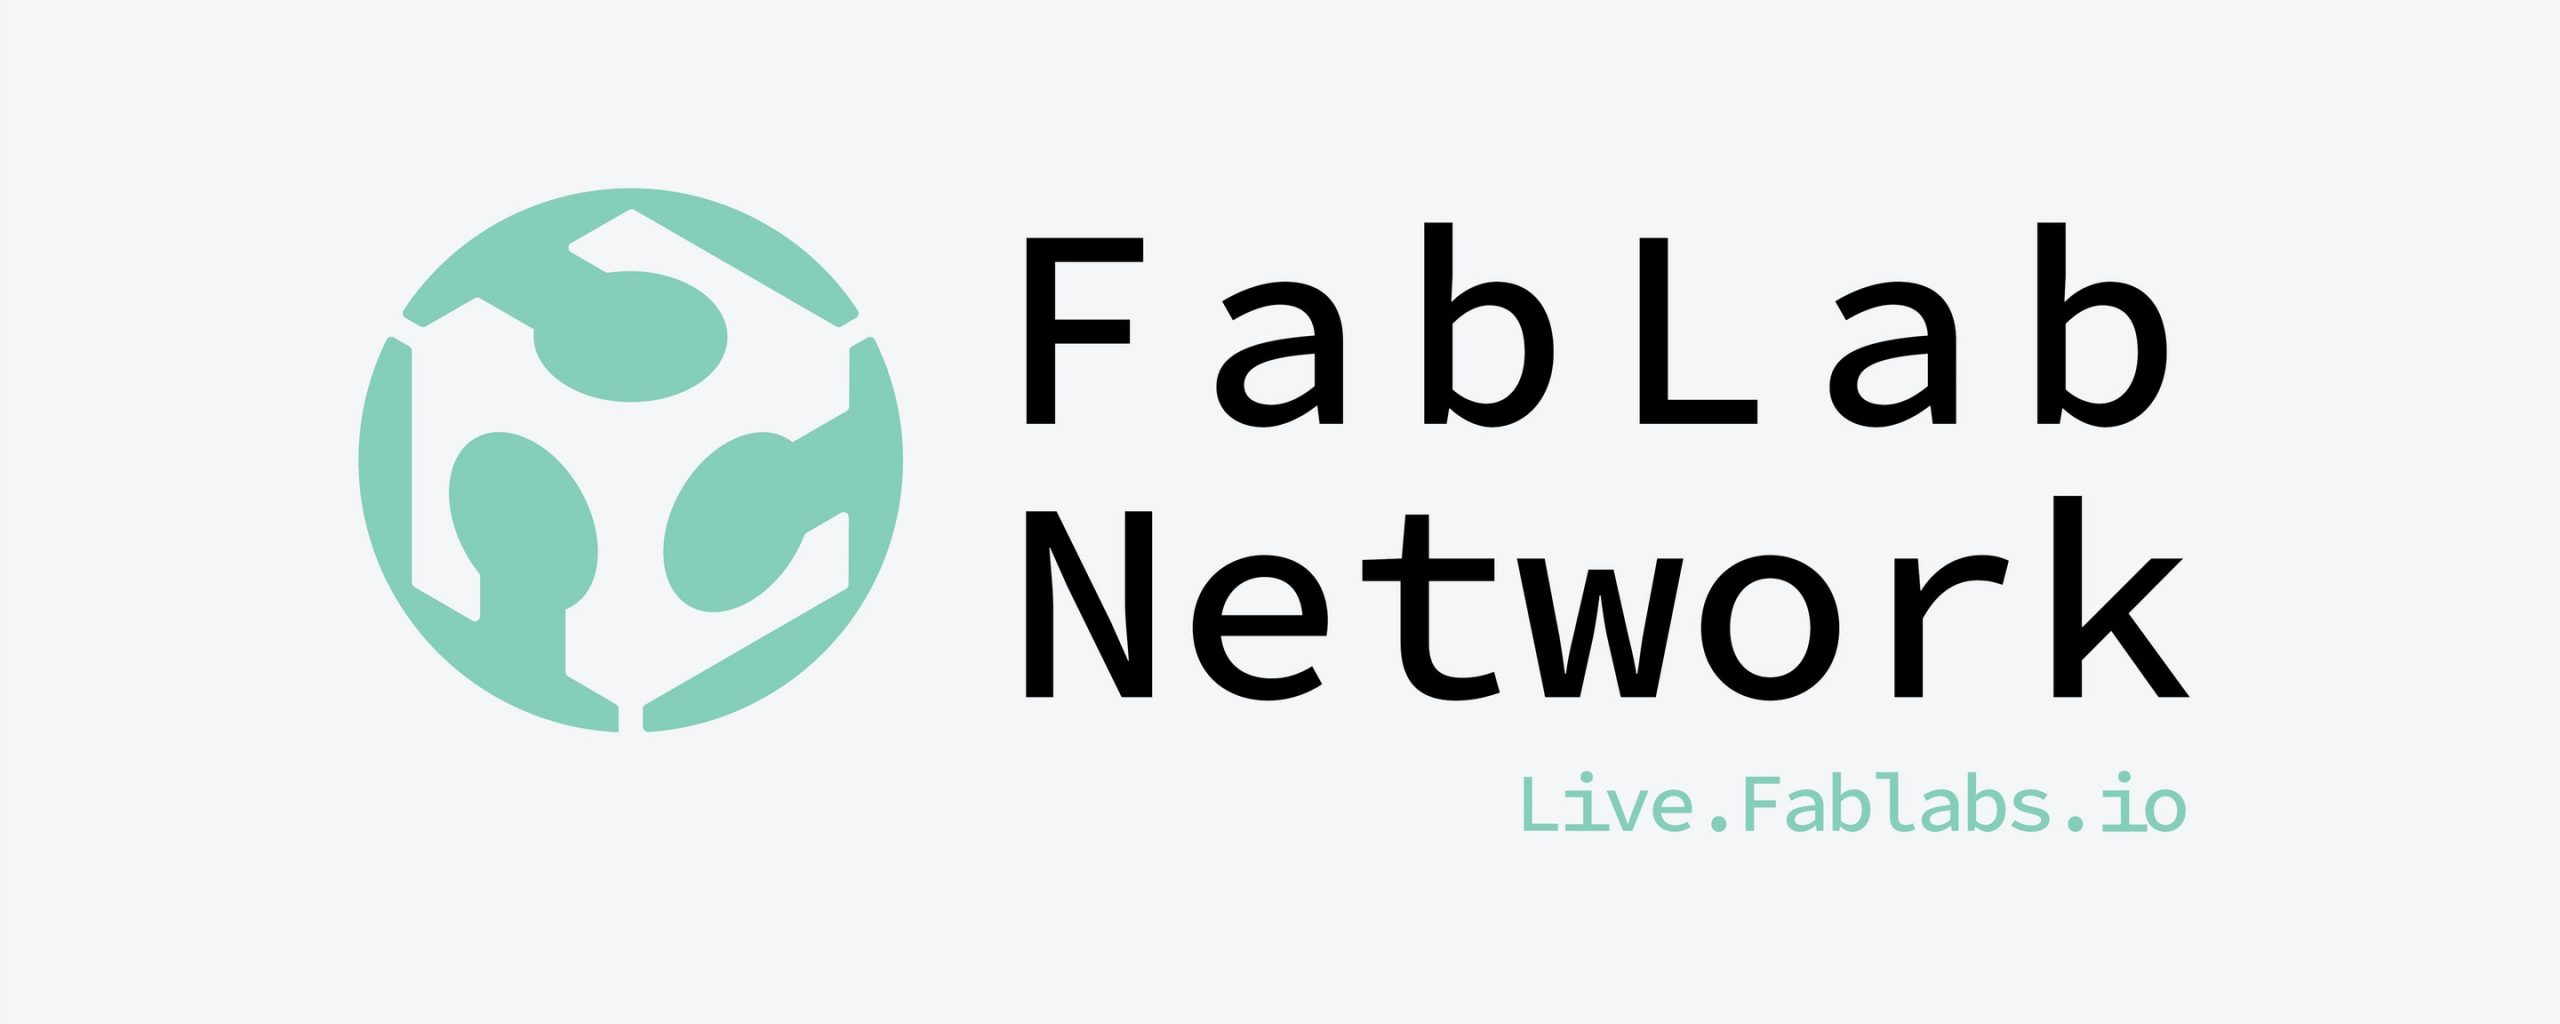 Welcome to the #FabLabNetwork